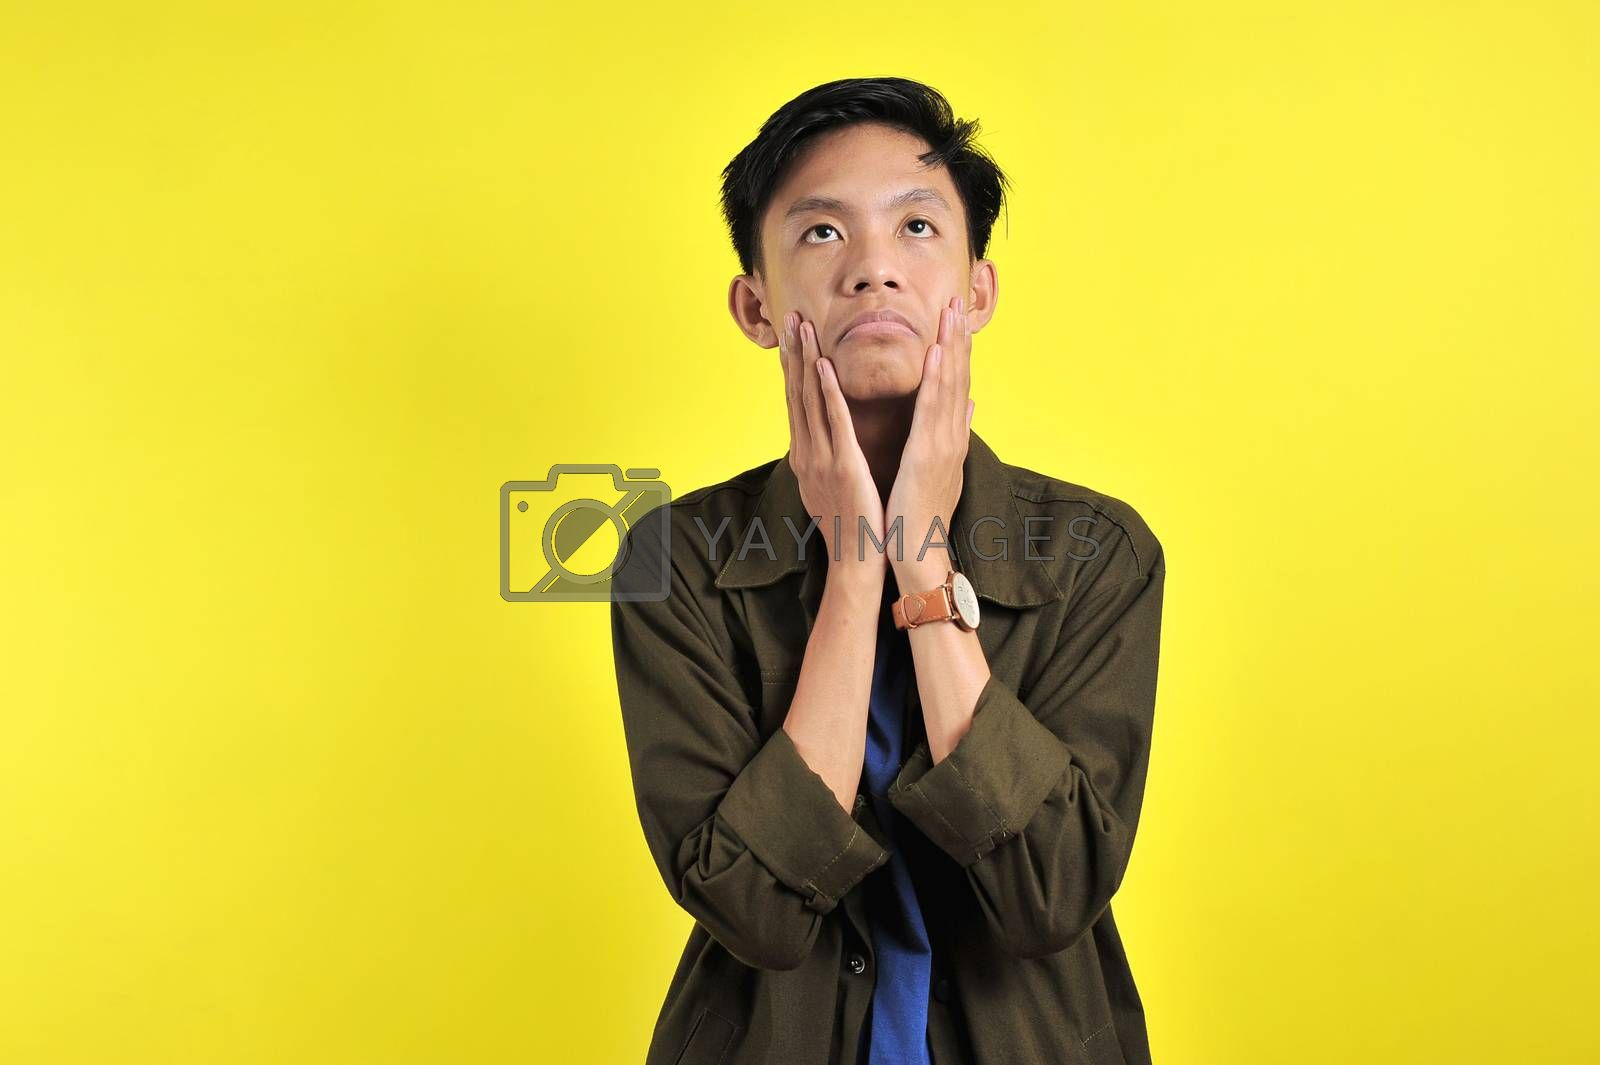 Confused man doing foolish gesture, disappointed expression, isolated on yellow background